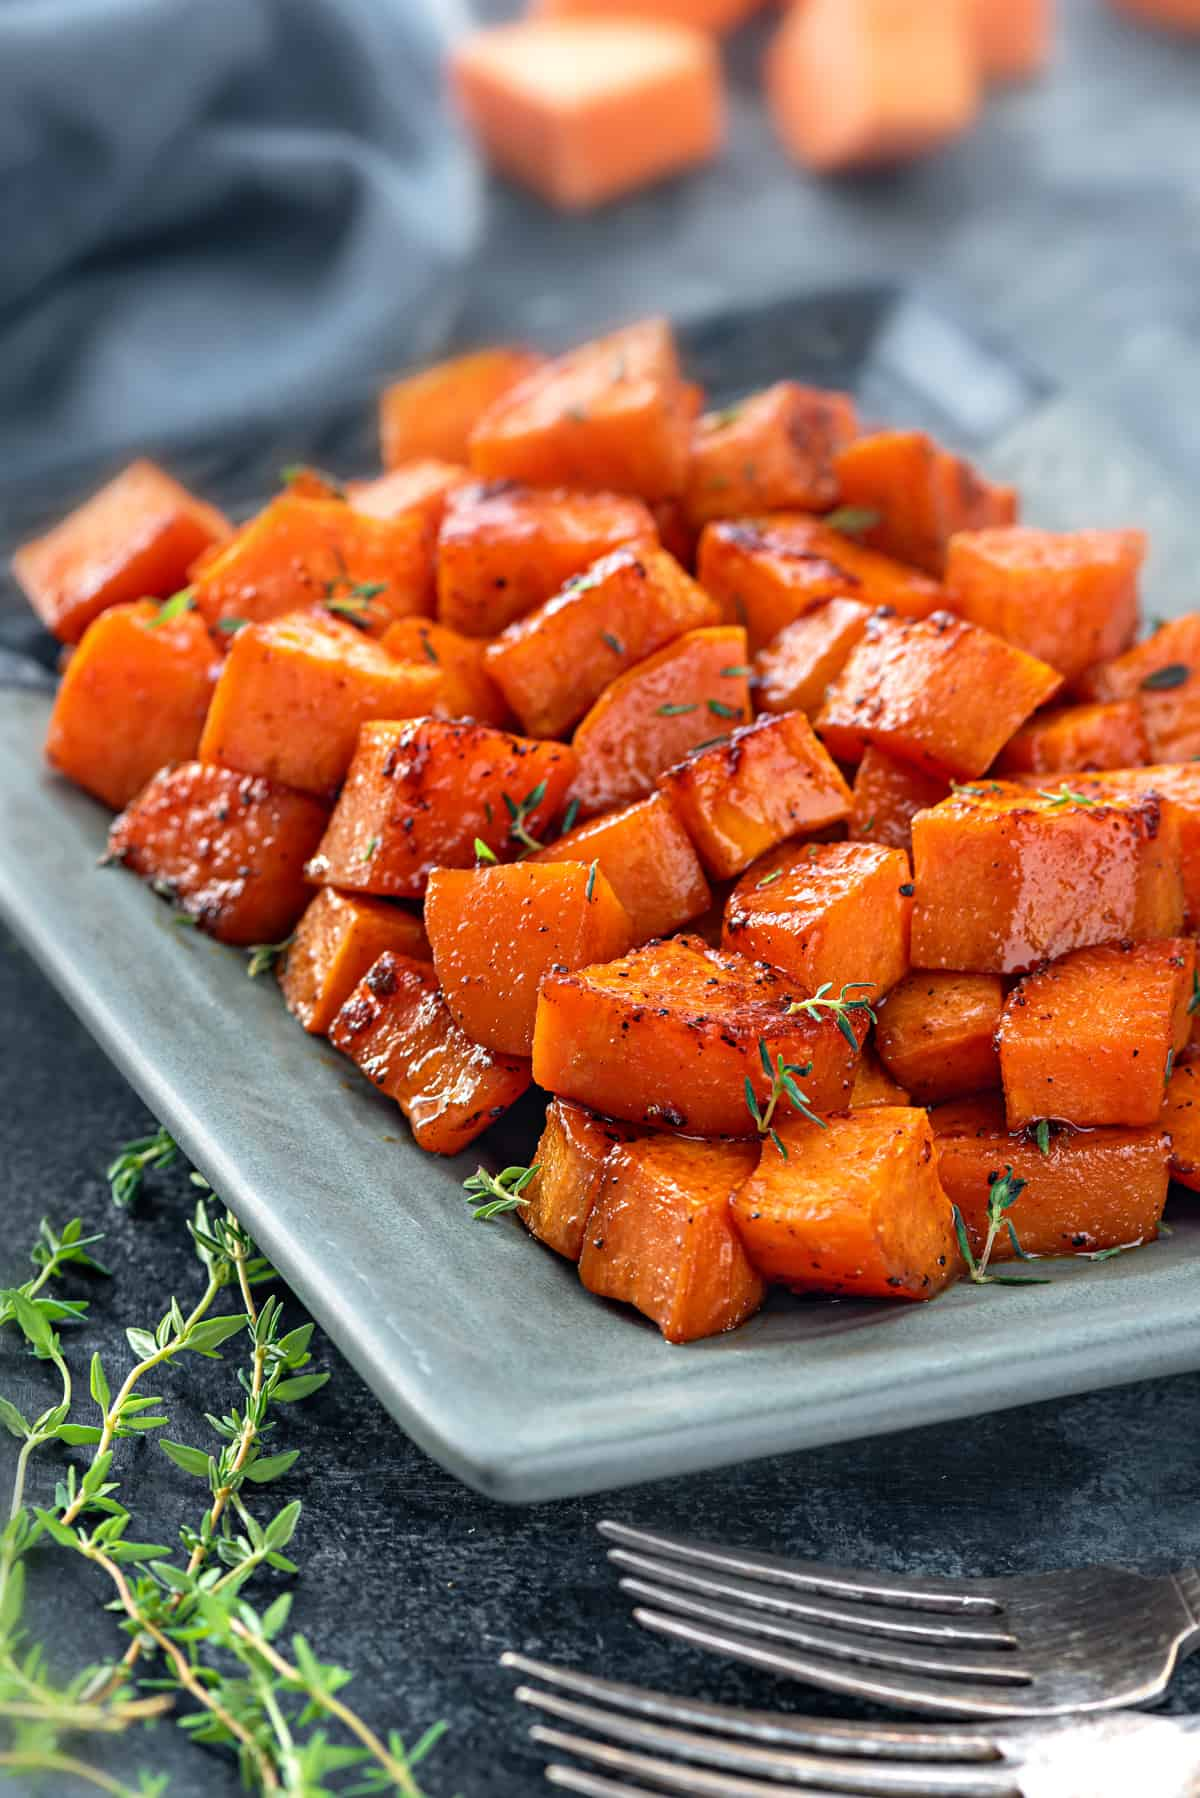 A plate of cubed, caramelized, sweet potatoes with sprigs of thyme on top.